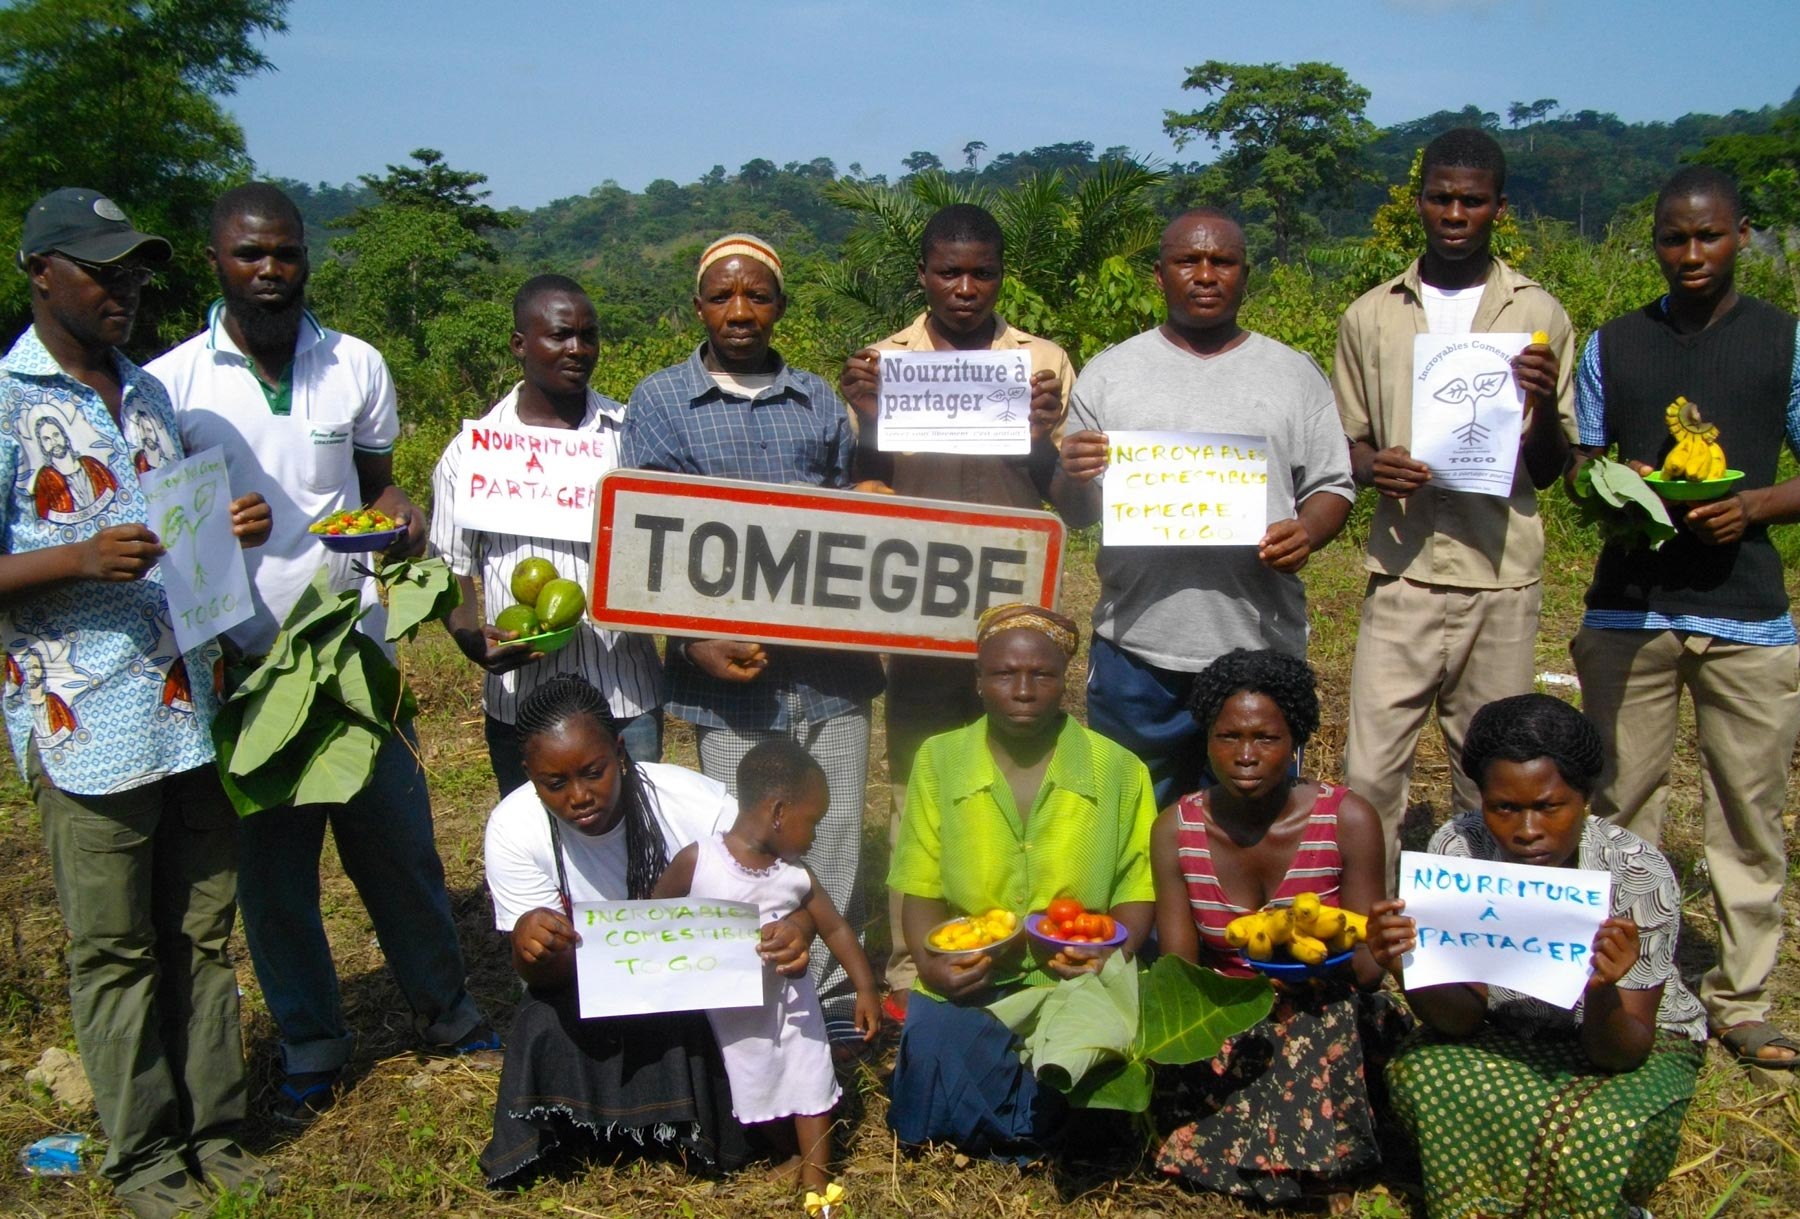 c435_incredible_edible_todmorden_togo_tomegbe_incroyables_comestibles_w1800